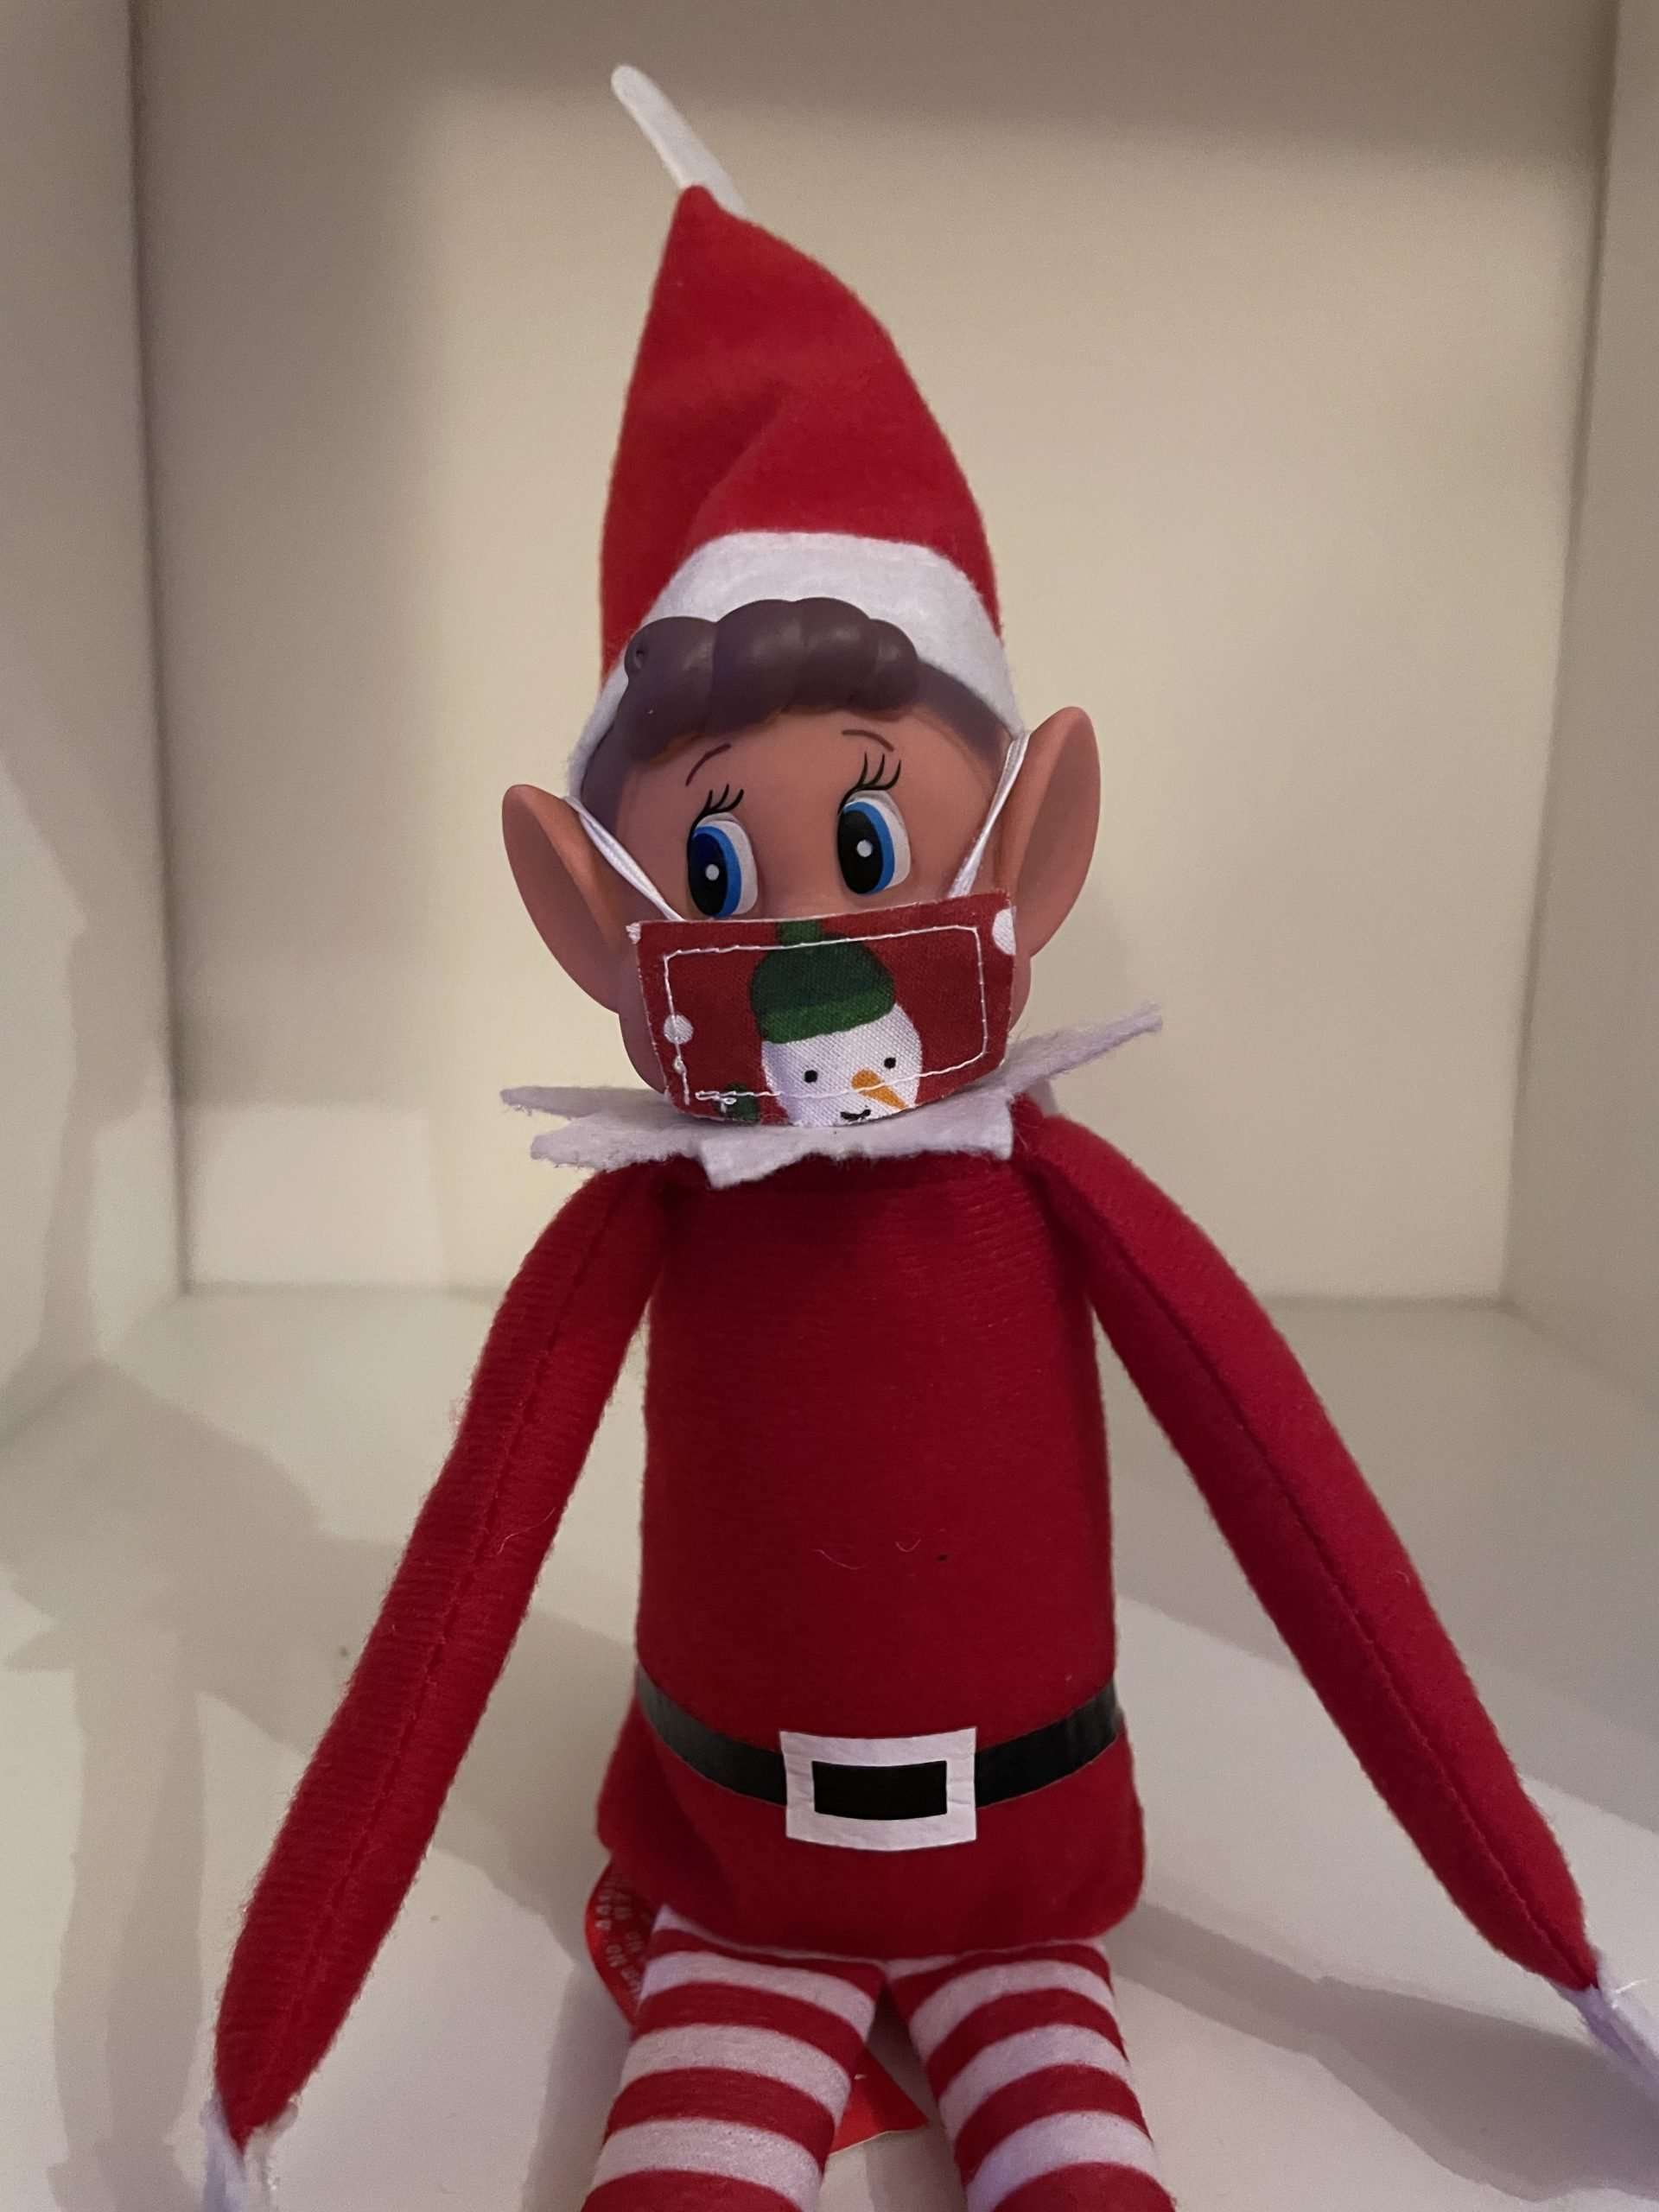 Elf on the Shelf Ideas - Elvis's face mask